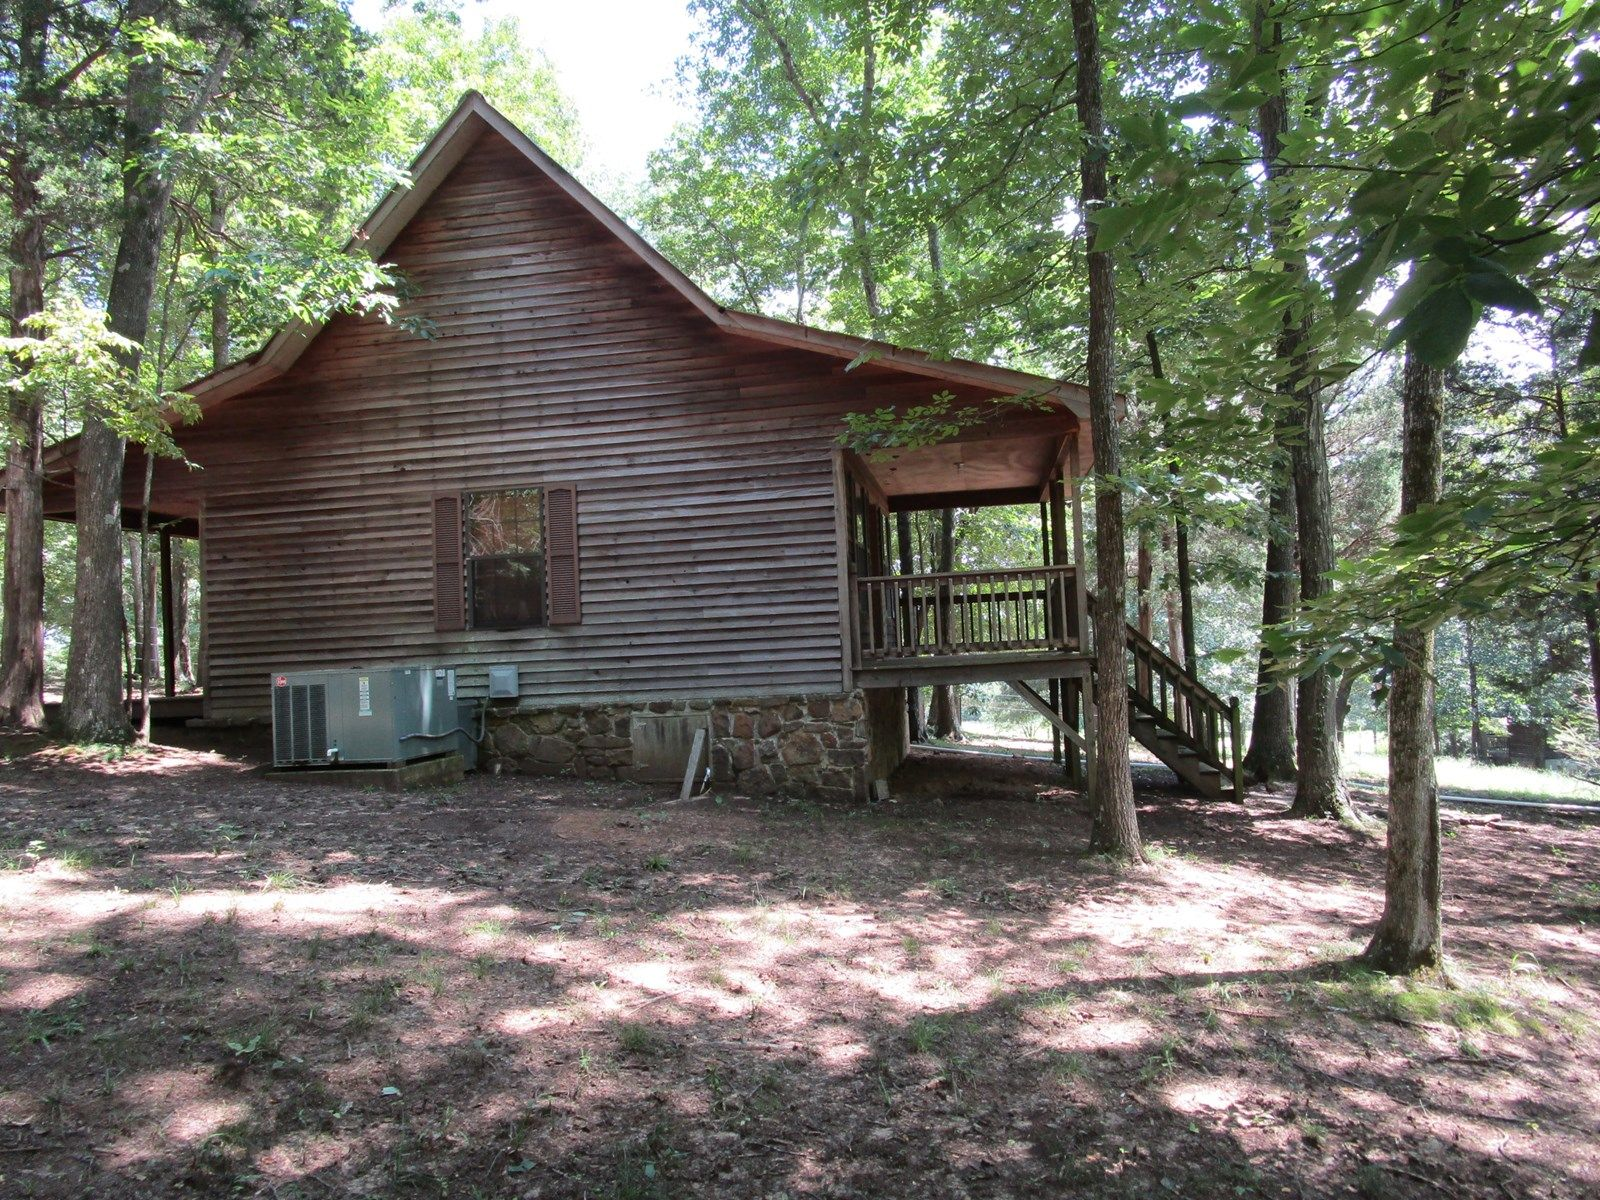 TENNESSEE CABIN WITH BARN AND FENCING | Tennessee log homes for sale